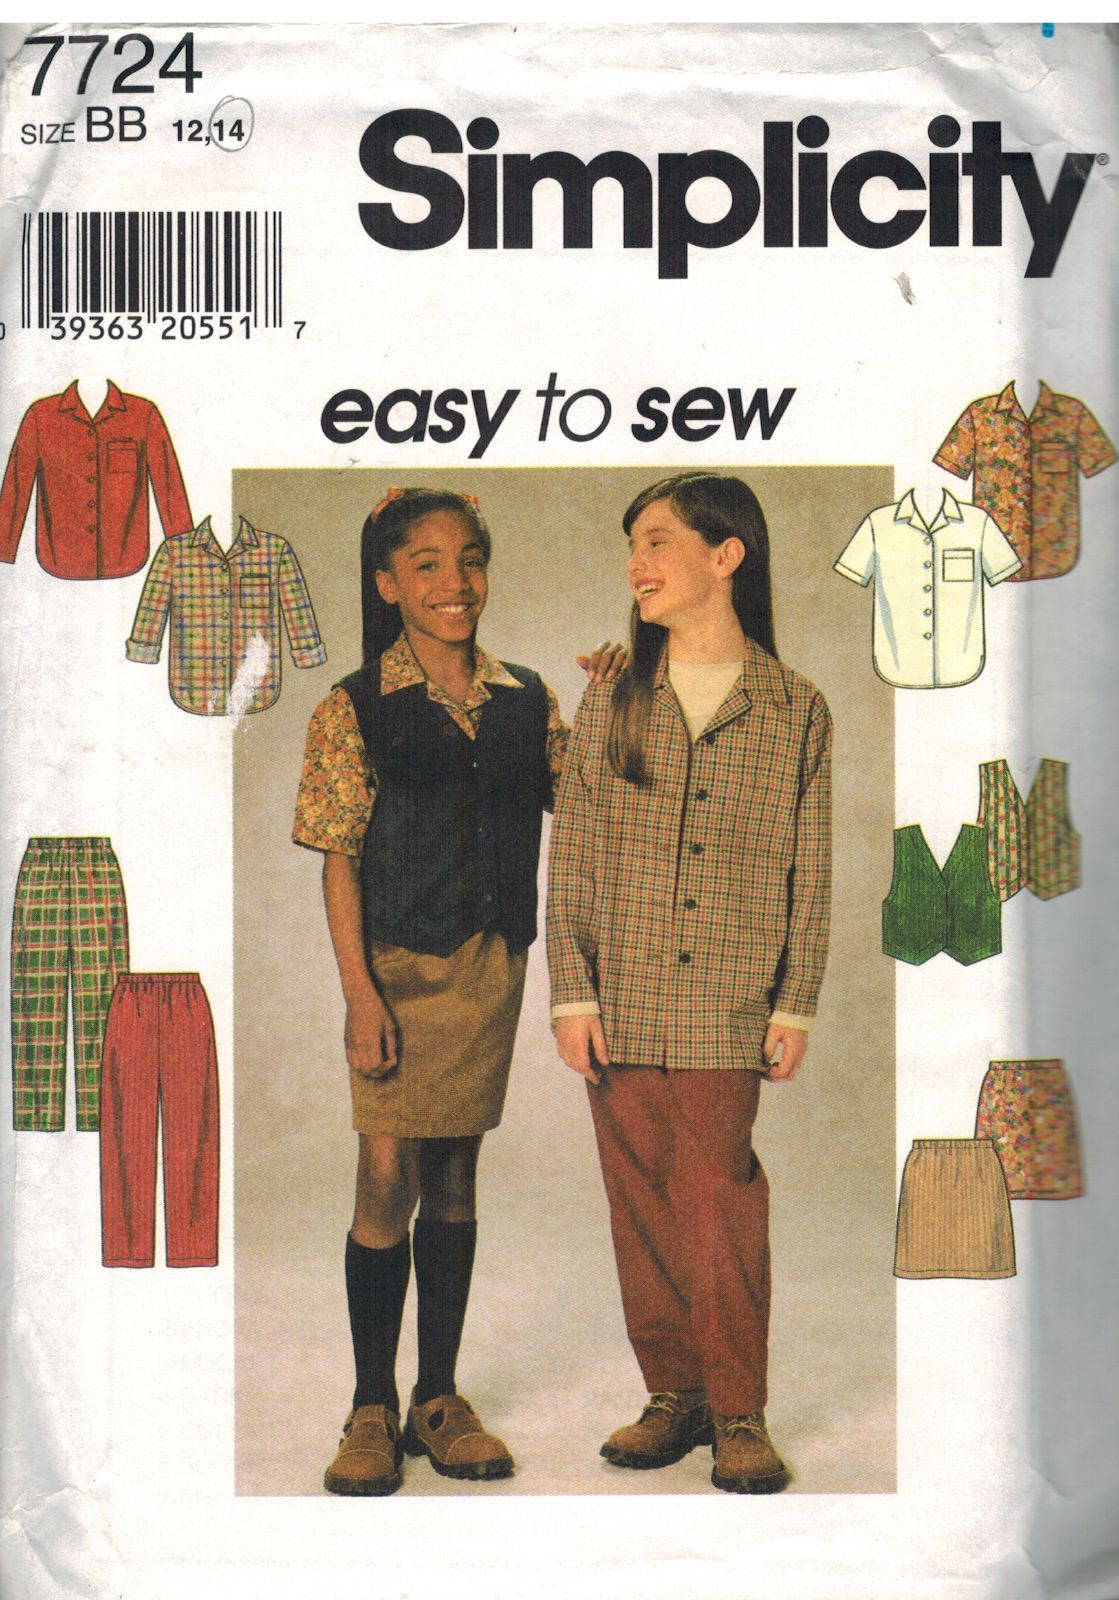 UNCUT Simplicity Sewing Pattern 7724 Girls Shirt Vest Pants Skirt Waistcoat OOP